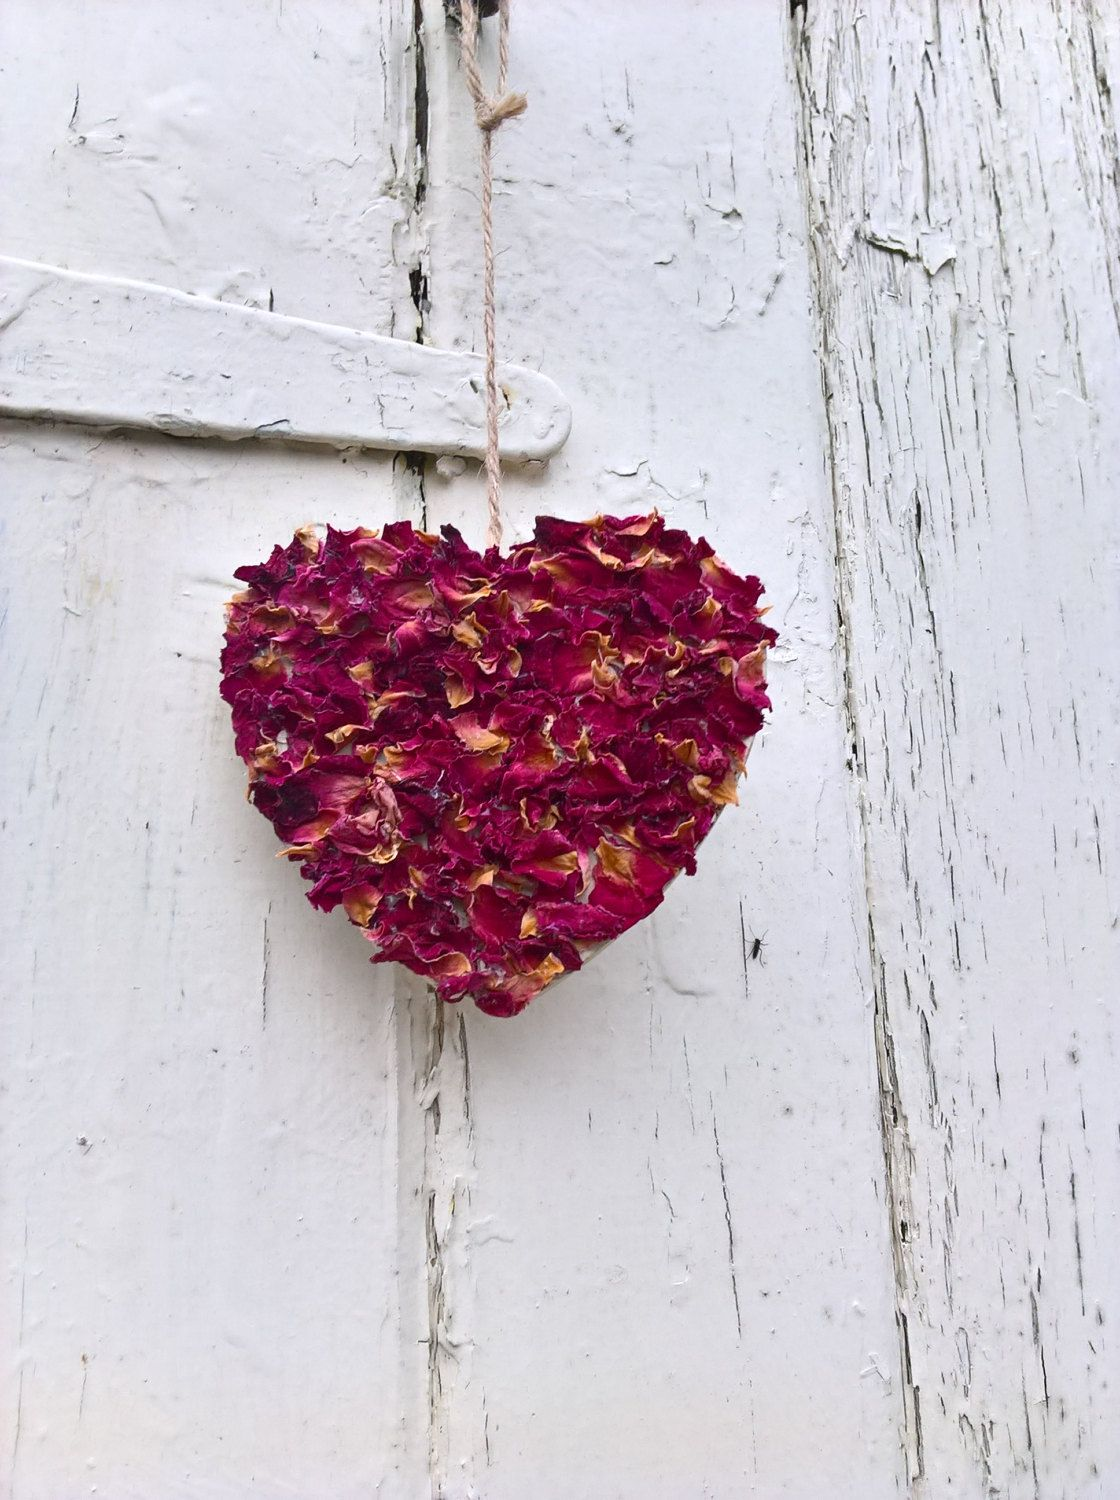 Valentine Petal Heart Decoration Hanging Heart Dried Flowers Dried Petals Valentine Gift Home Decor Weddin Heart Decorations Dried Flowers Hanging Hearts